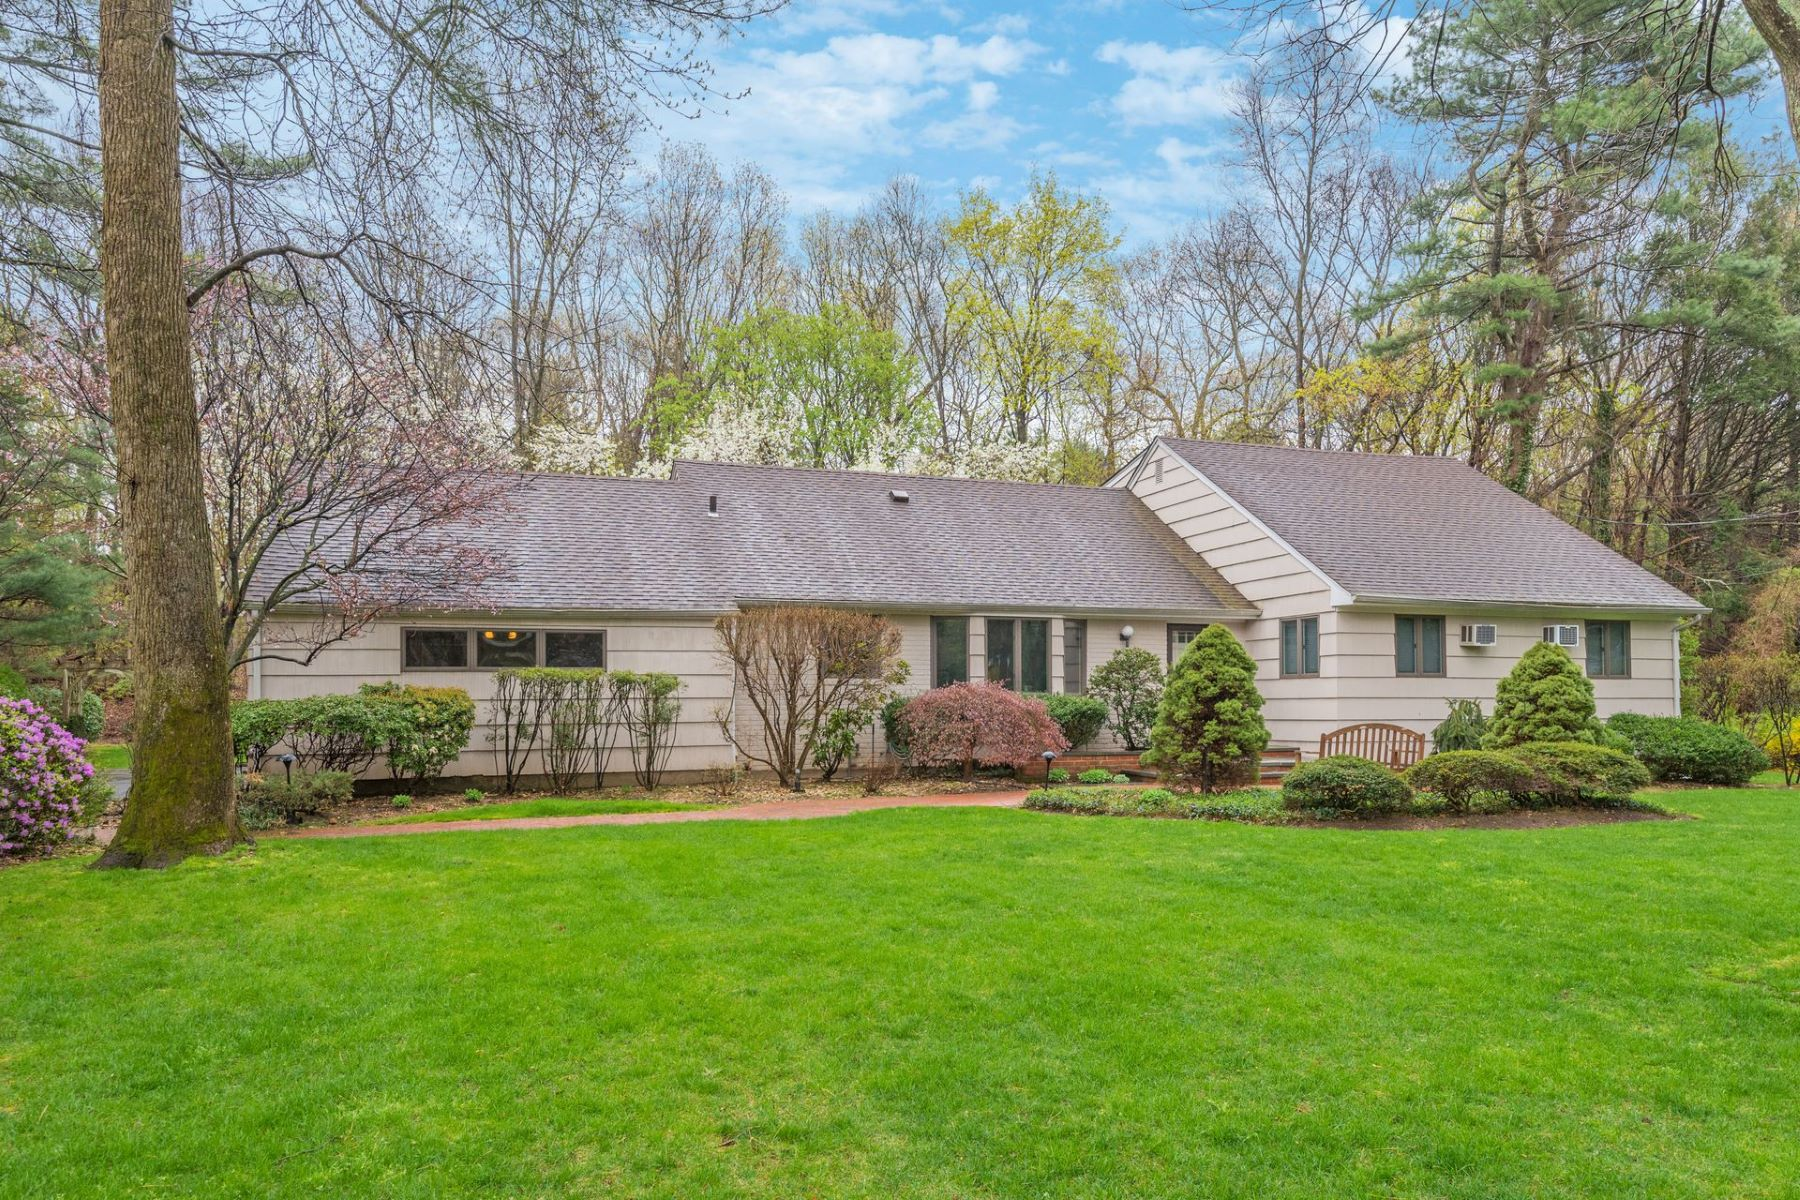 Single Family Homes for Sale at Dix Hills 8 Beltane Dr Dix Hills, New York 11746 United States